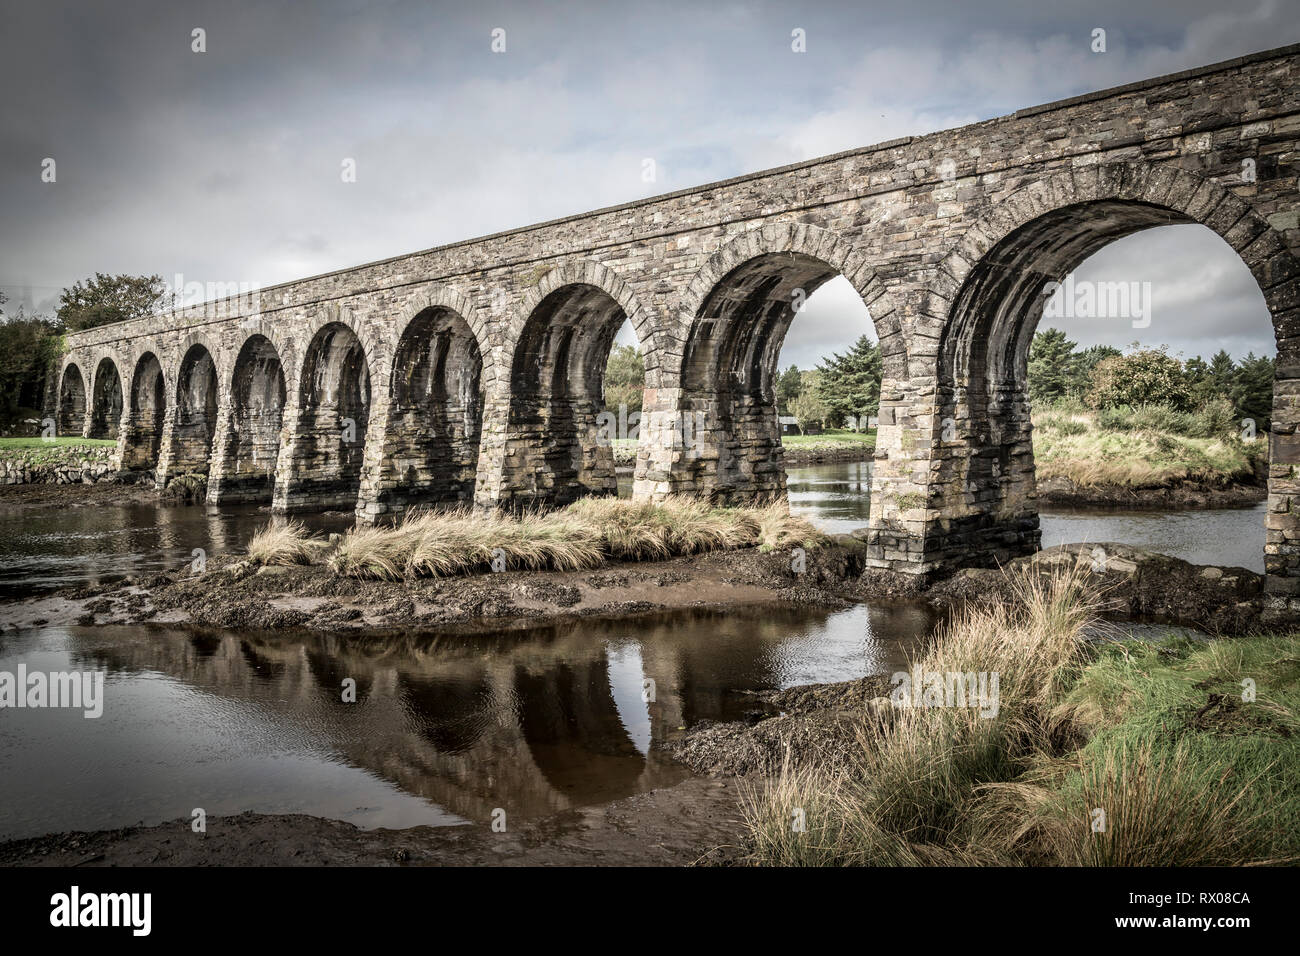 Train Viaduct in Ballydehob, West Cork, Ireland - Stock Image